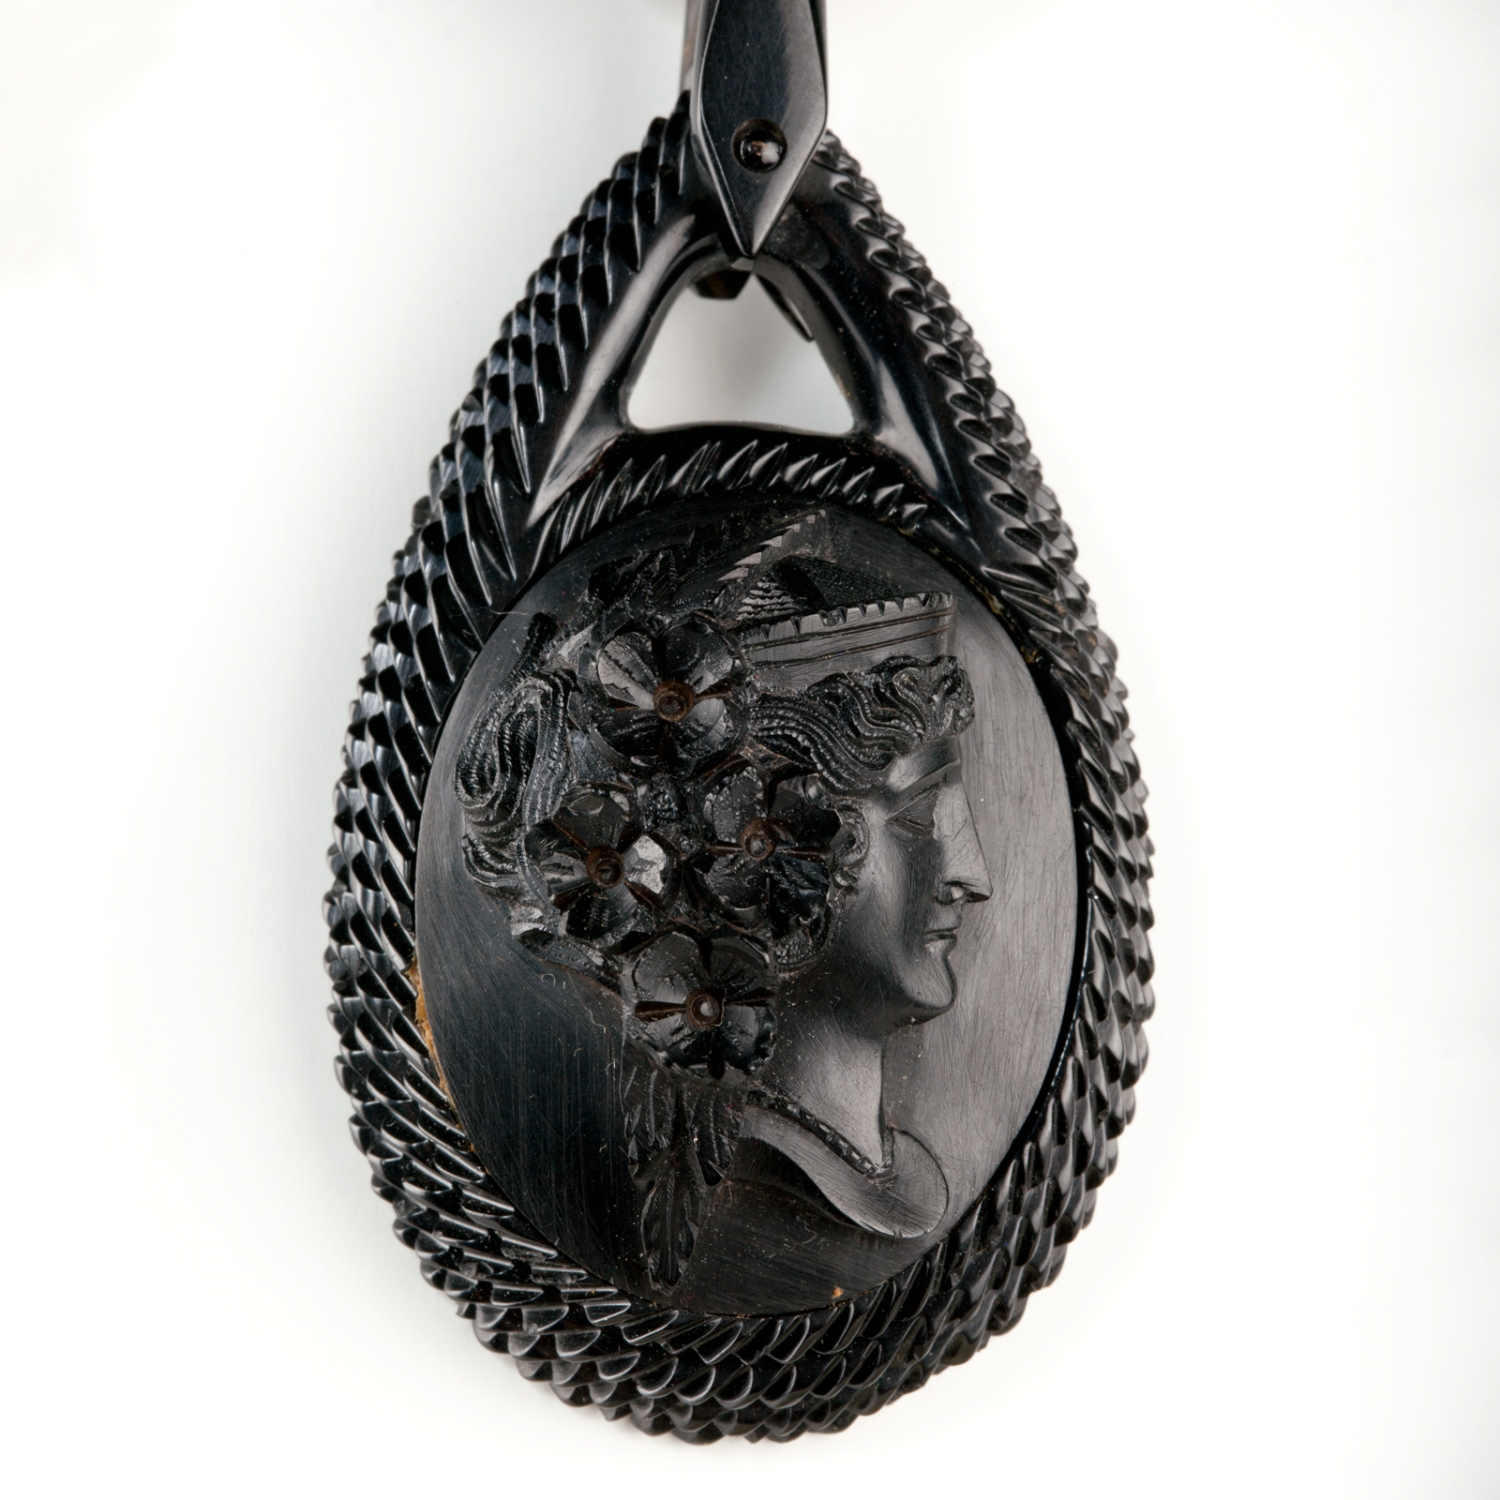 Detail view of pendant on a vulcanite necklace. The necklace is composed of 32 graduating oval links and three oval pendants.